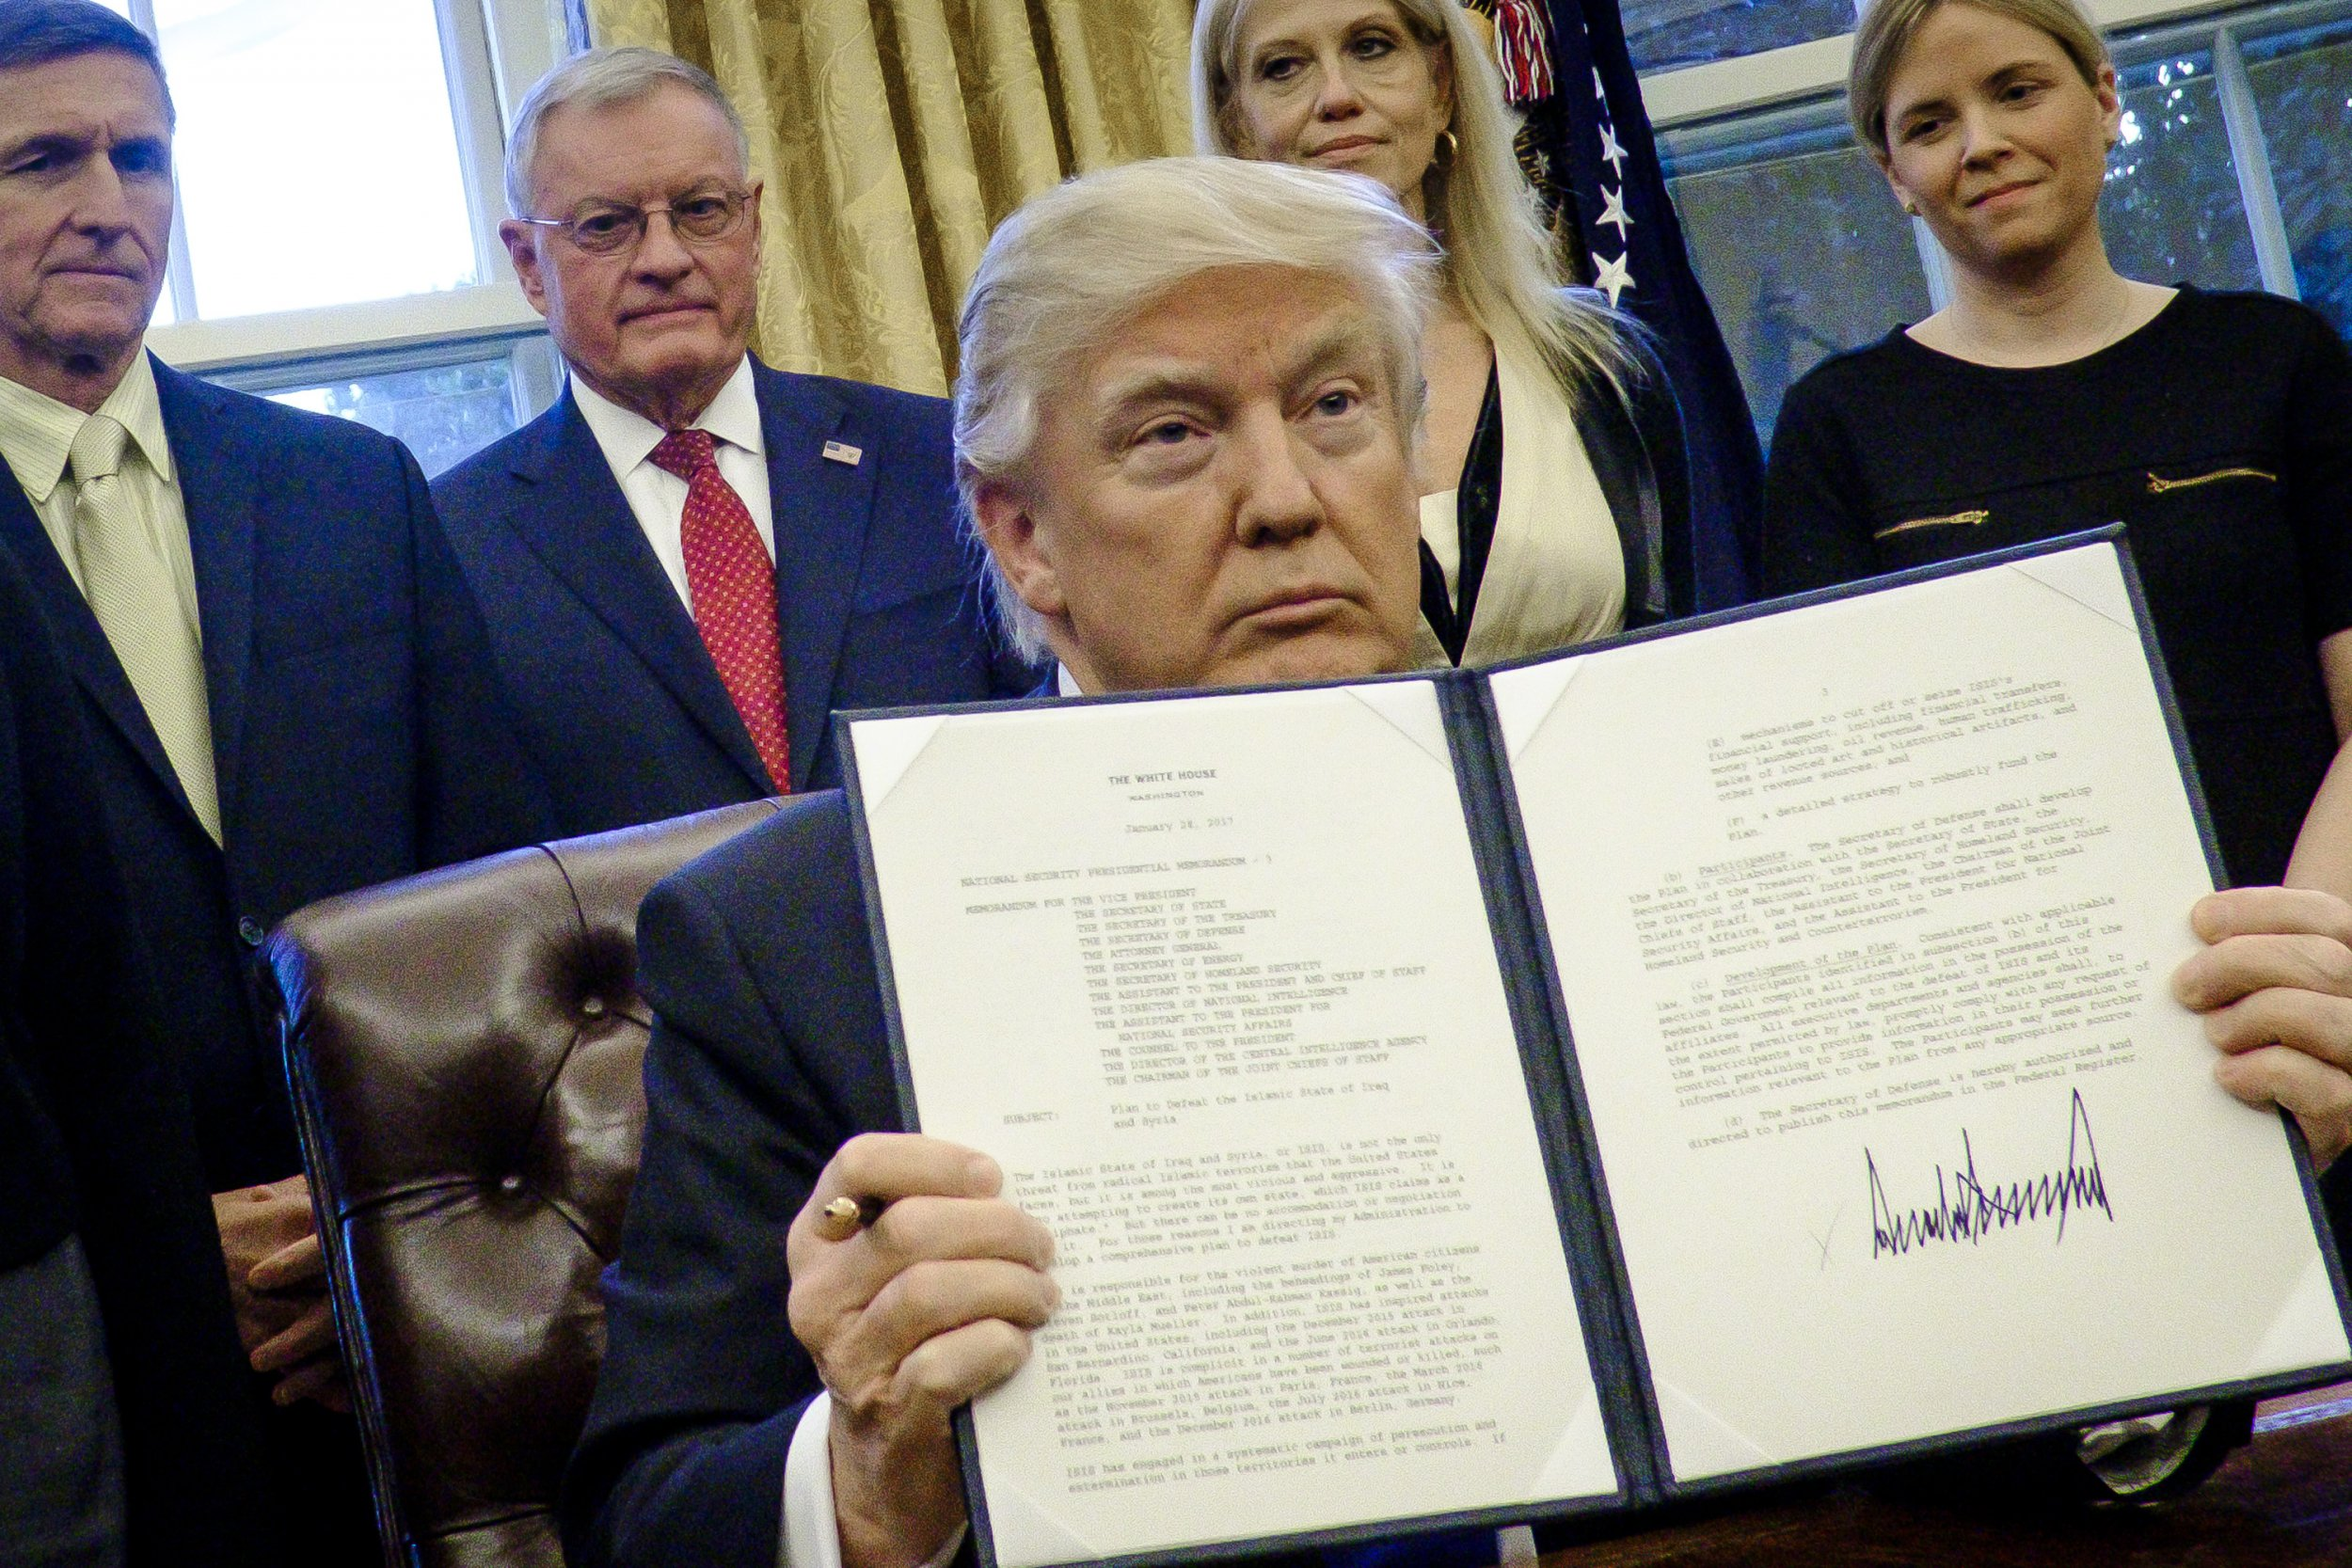 Obama Signed Order To Travel Ban